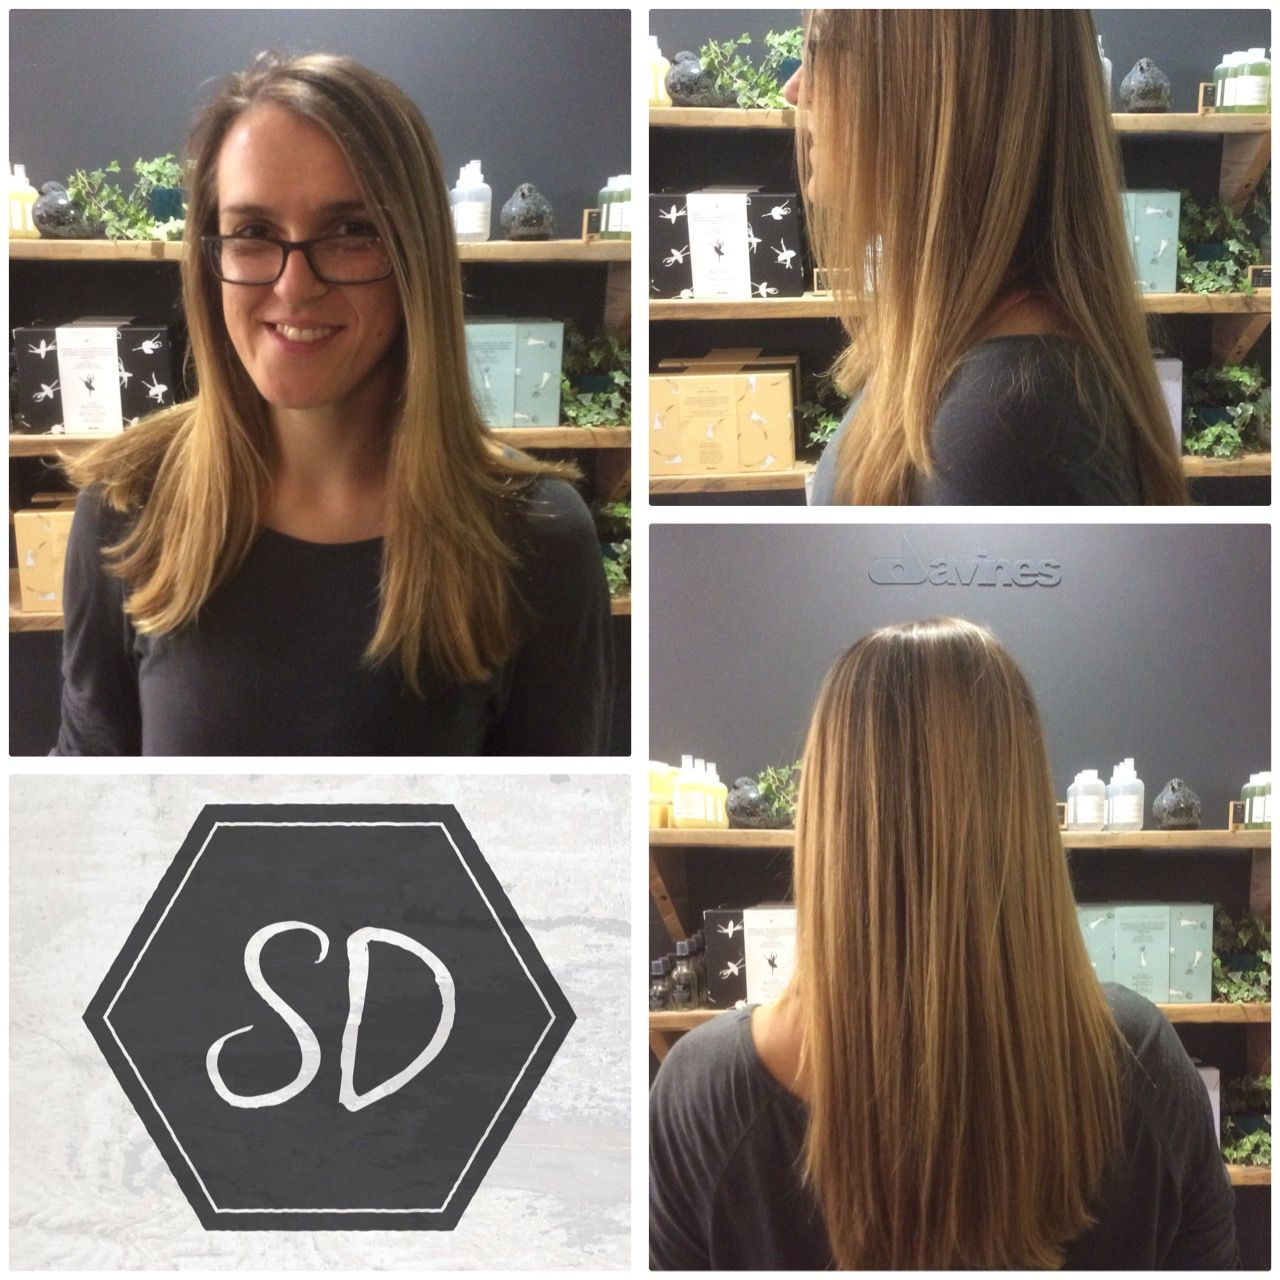 A stunning colour refresh with parting foils, by Charlene in the salon.  Book online with Charlene @ www.sdhair.co.uk or call 01179 502 402